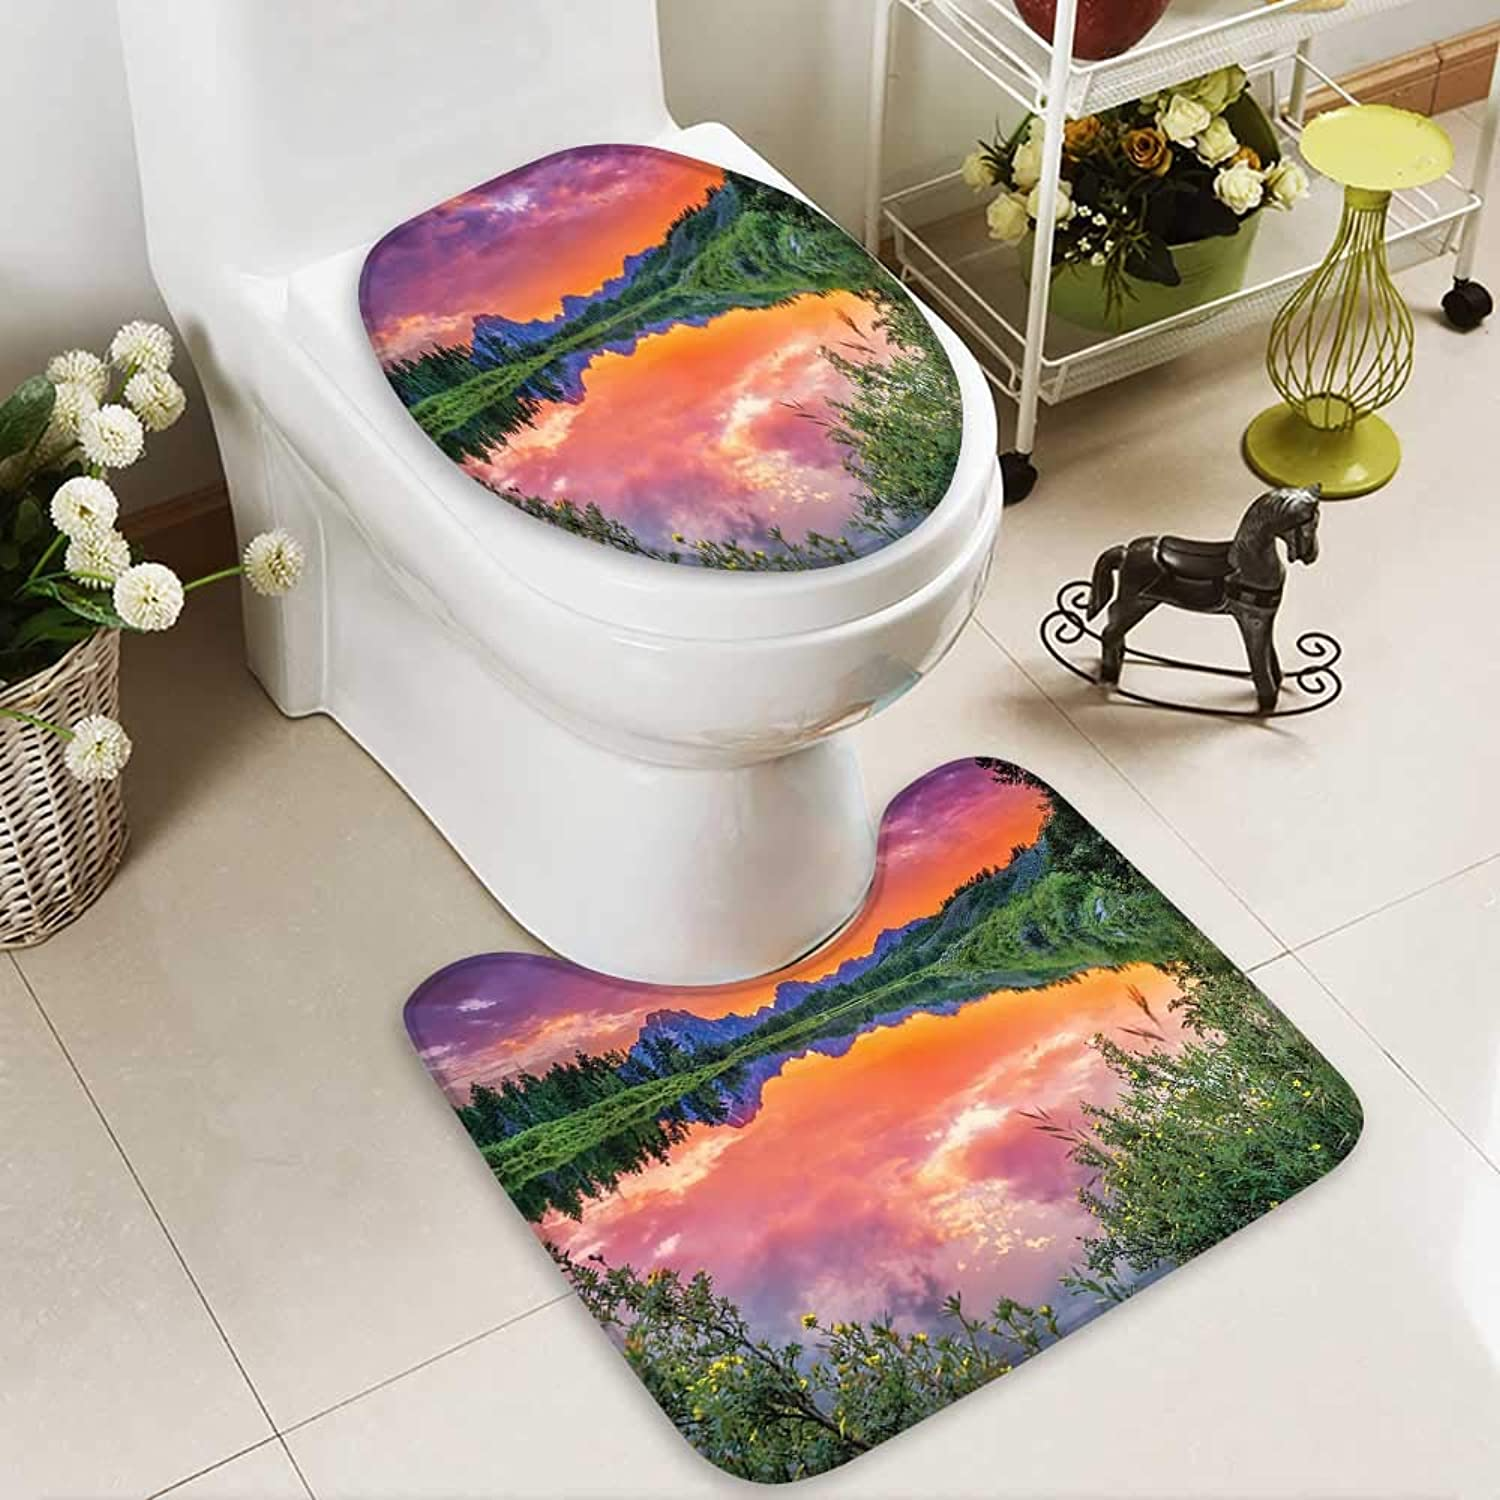 Muyindo Cushion Non-Slip Toilet Mat SunReflecti River Nature Photography droom Living Kids Gir Soft Non-Slip Water